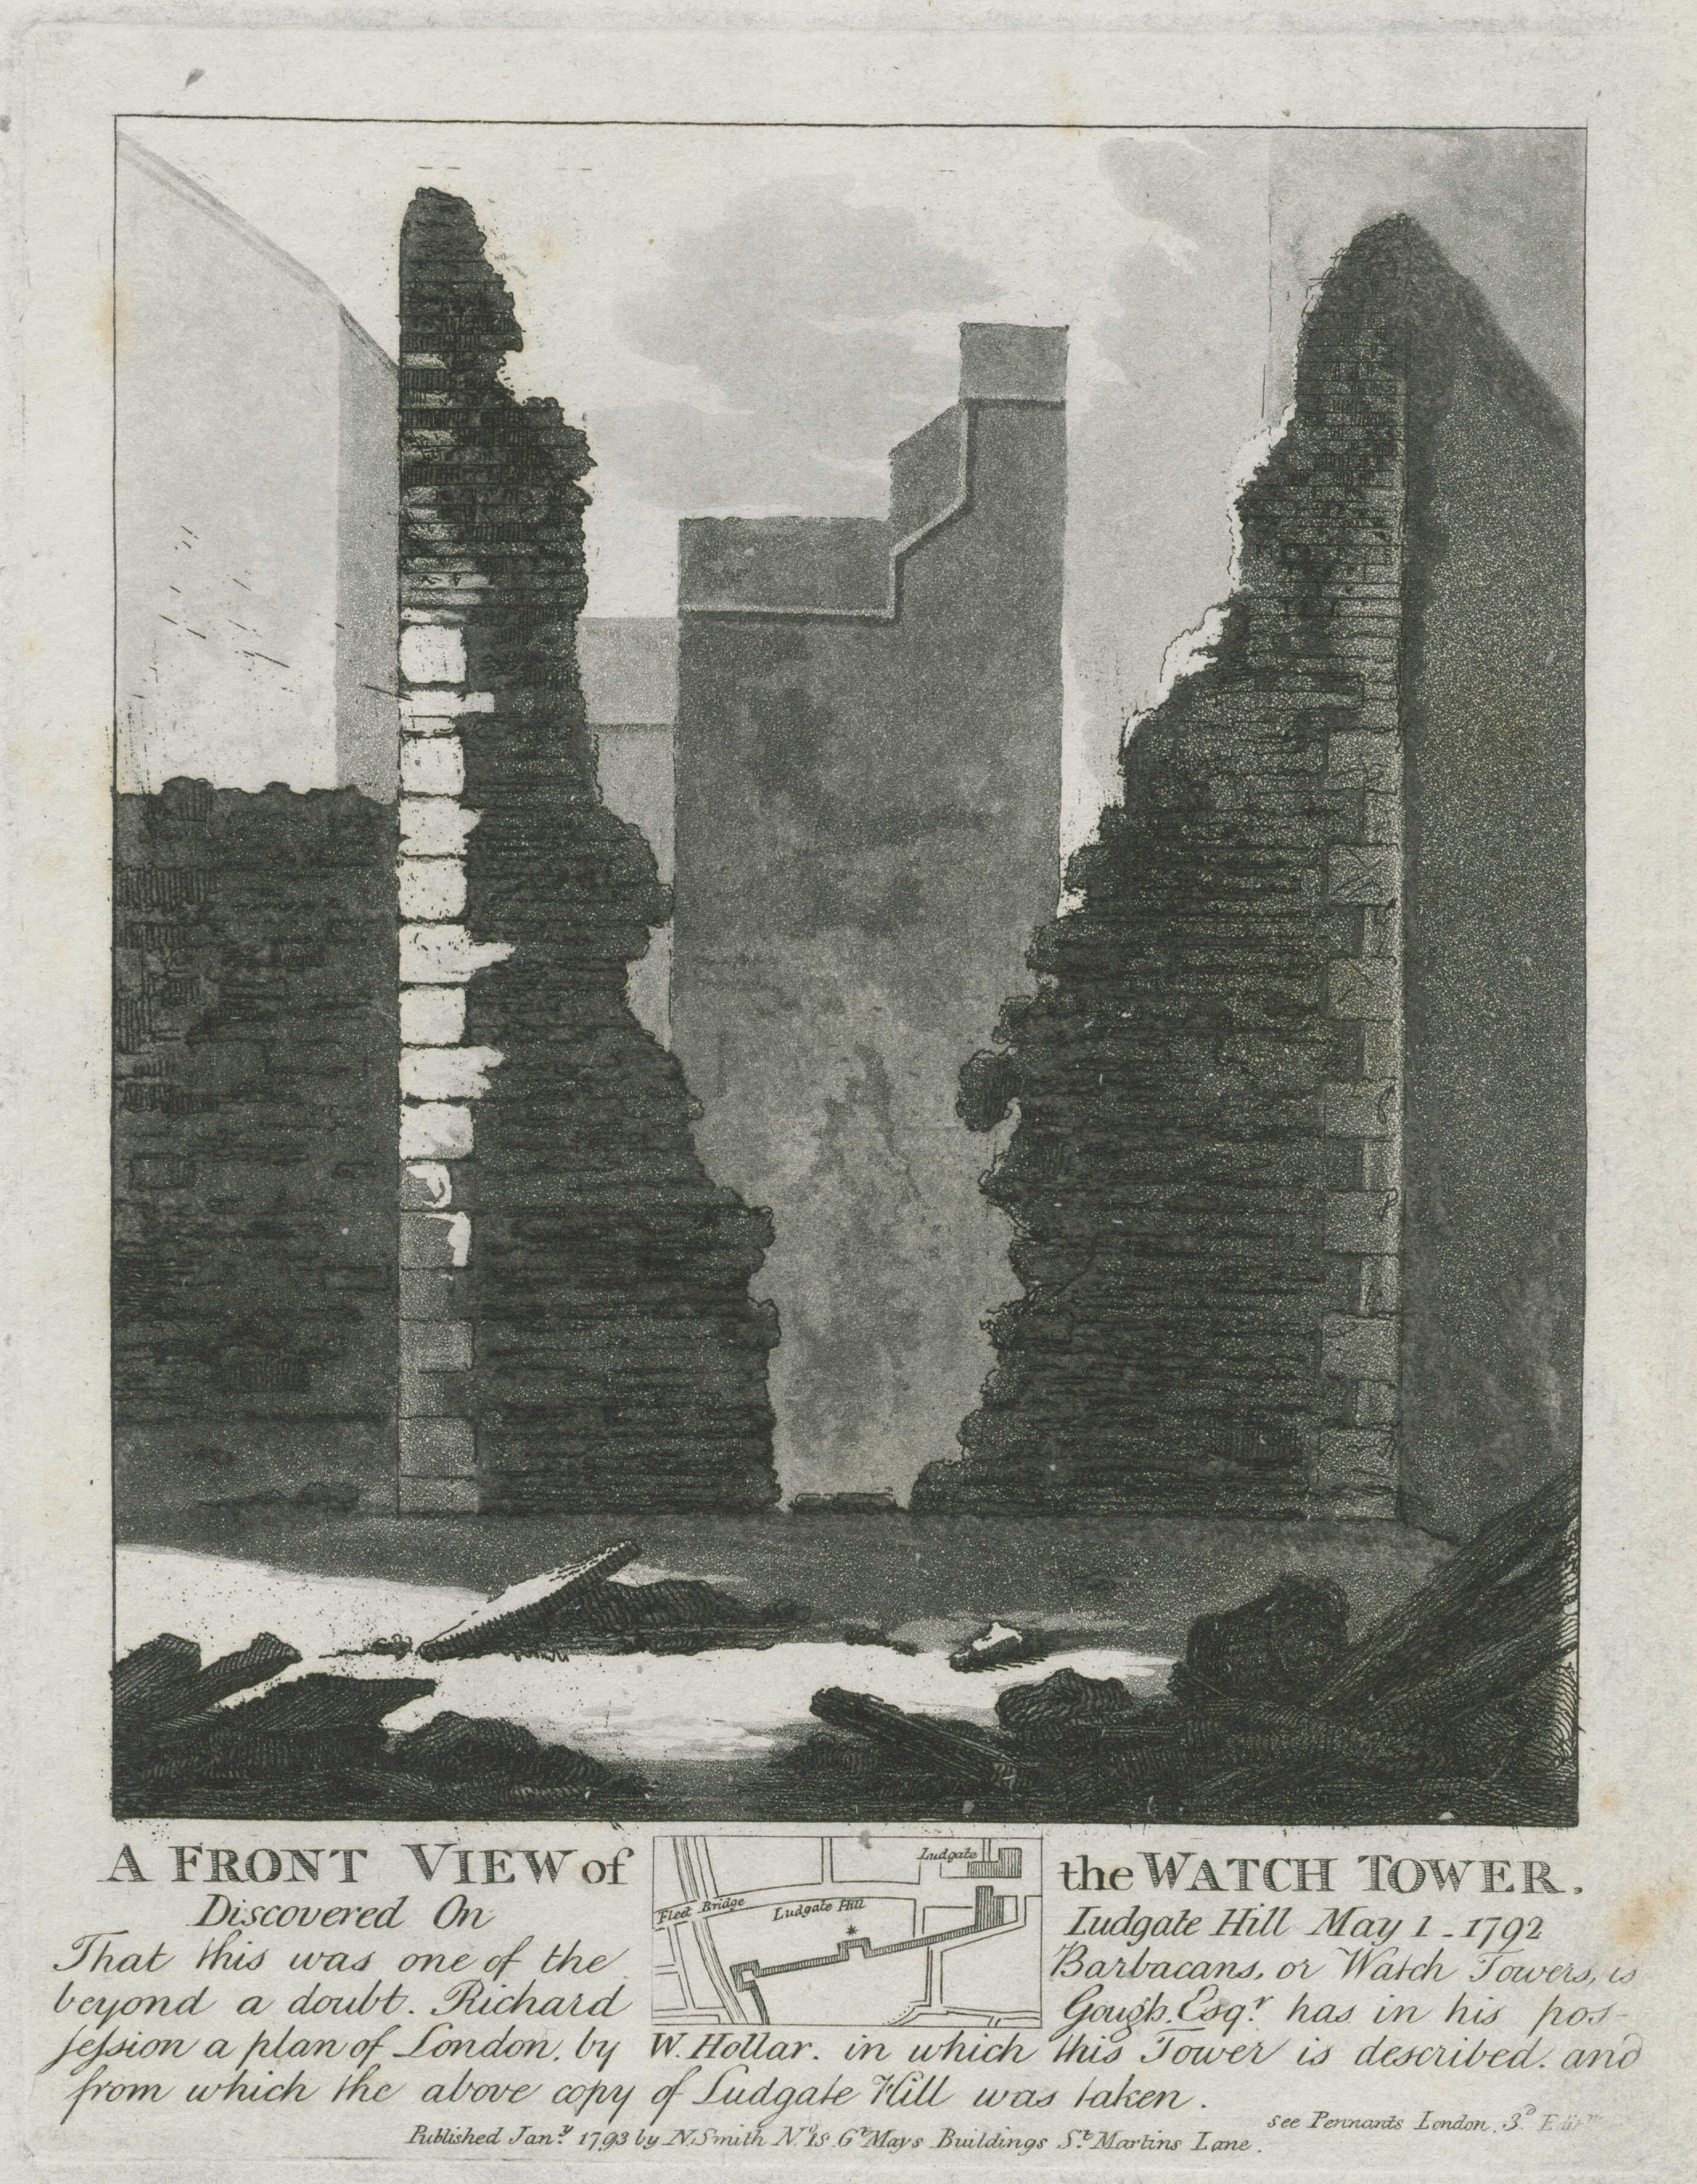 34-a-front-view-of-the-watch-tower-discovered-on-ludgate-hill-may-1-1792